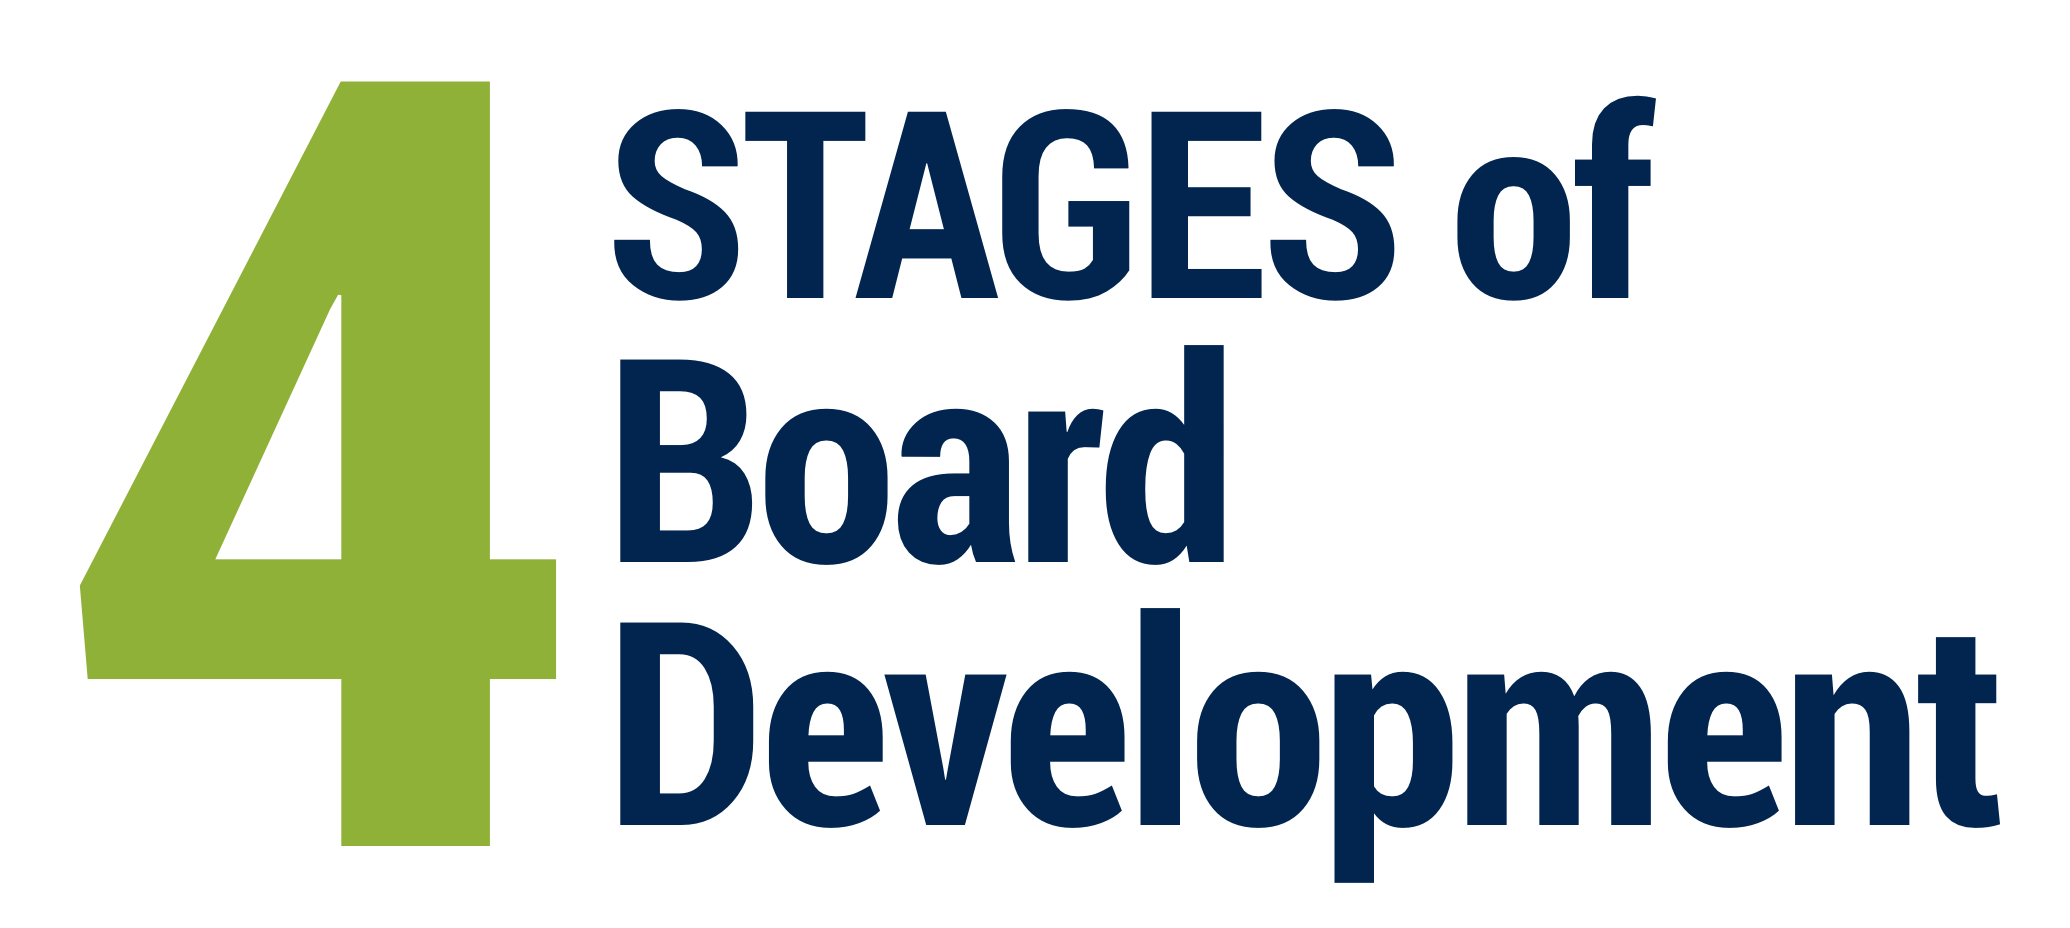 4 Stages of Board Development Logo.png